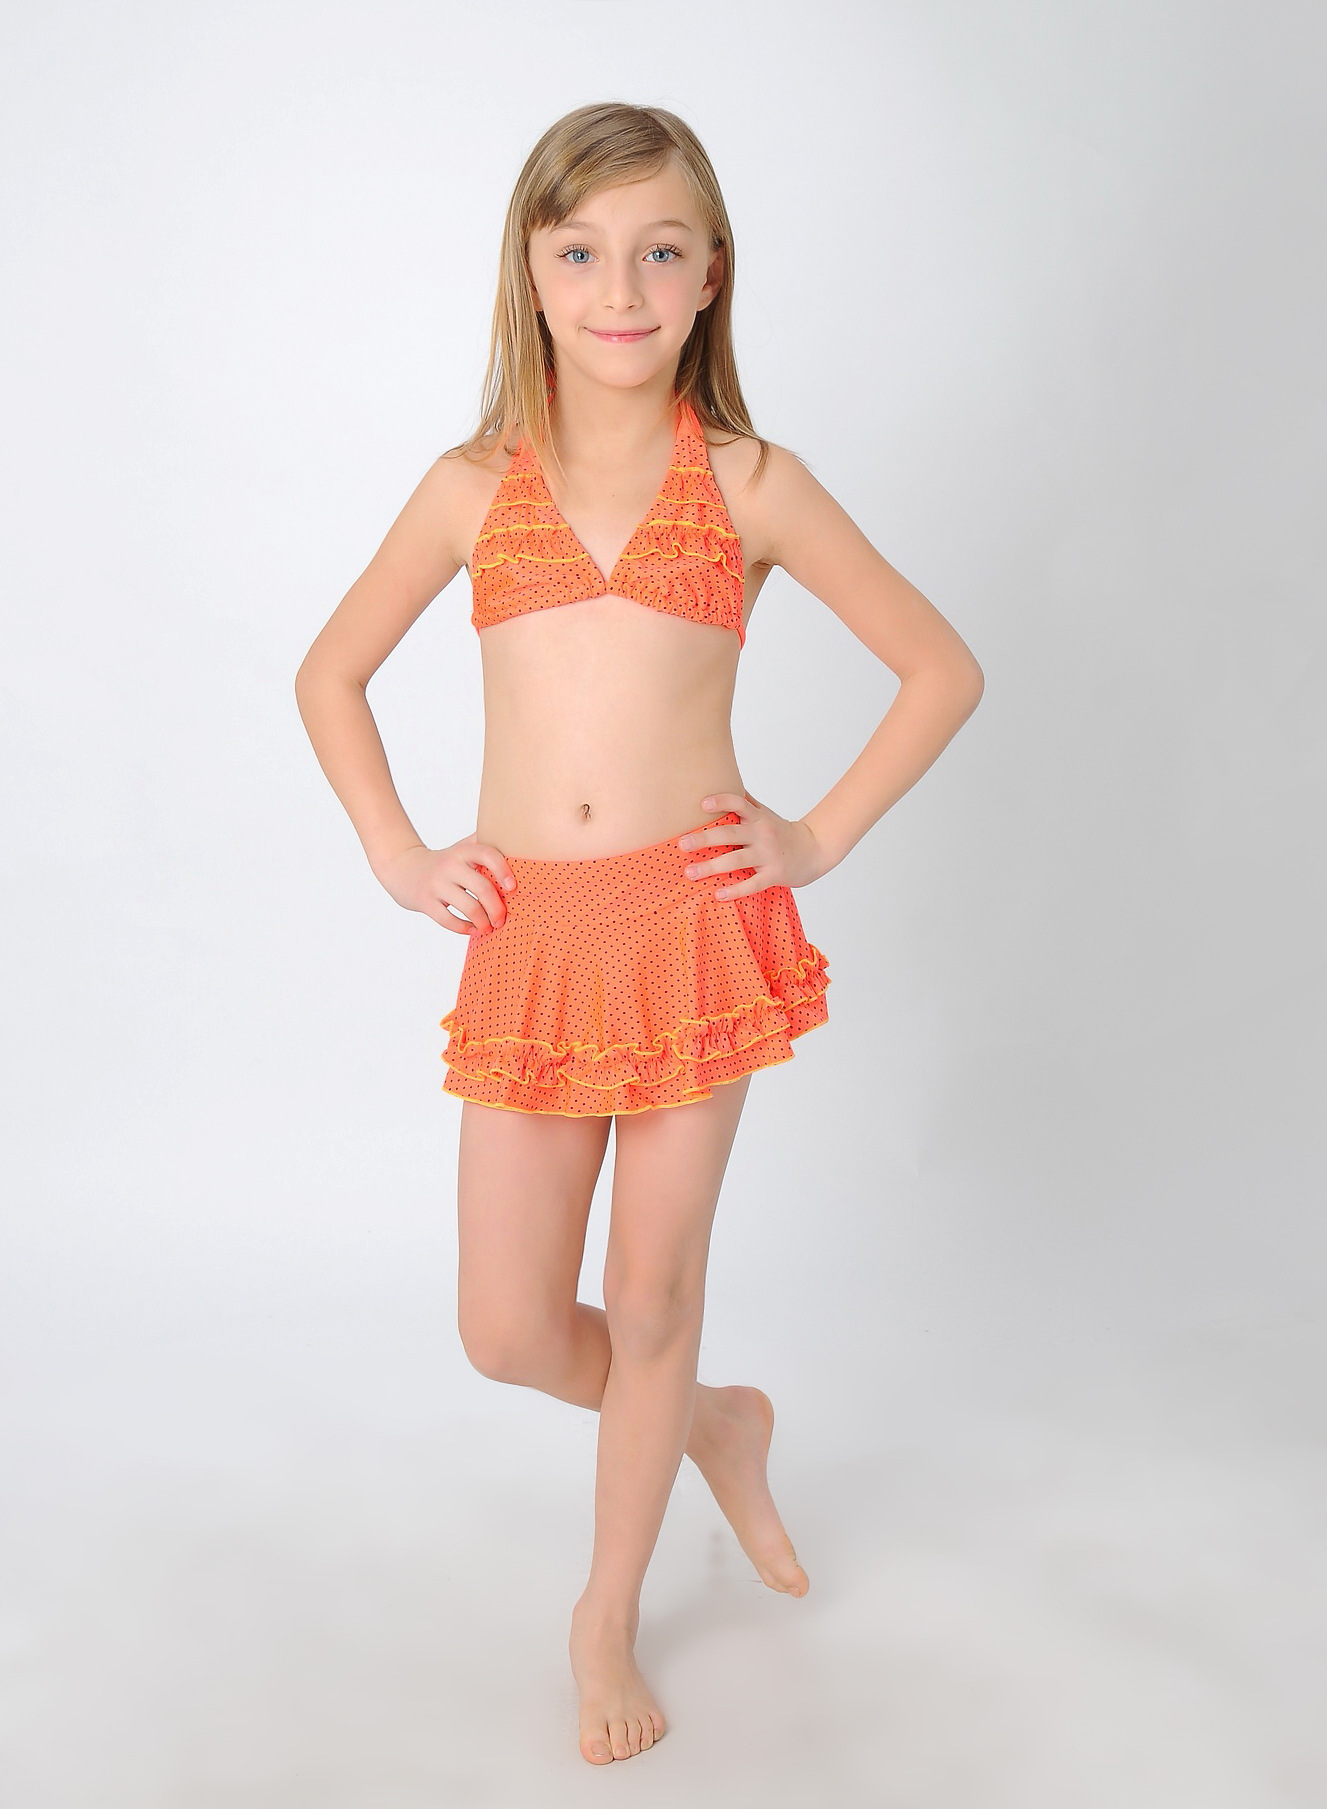 karsen-free-very-young-little-girlies-be